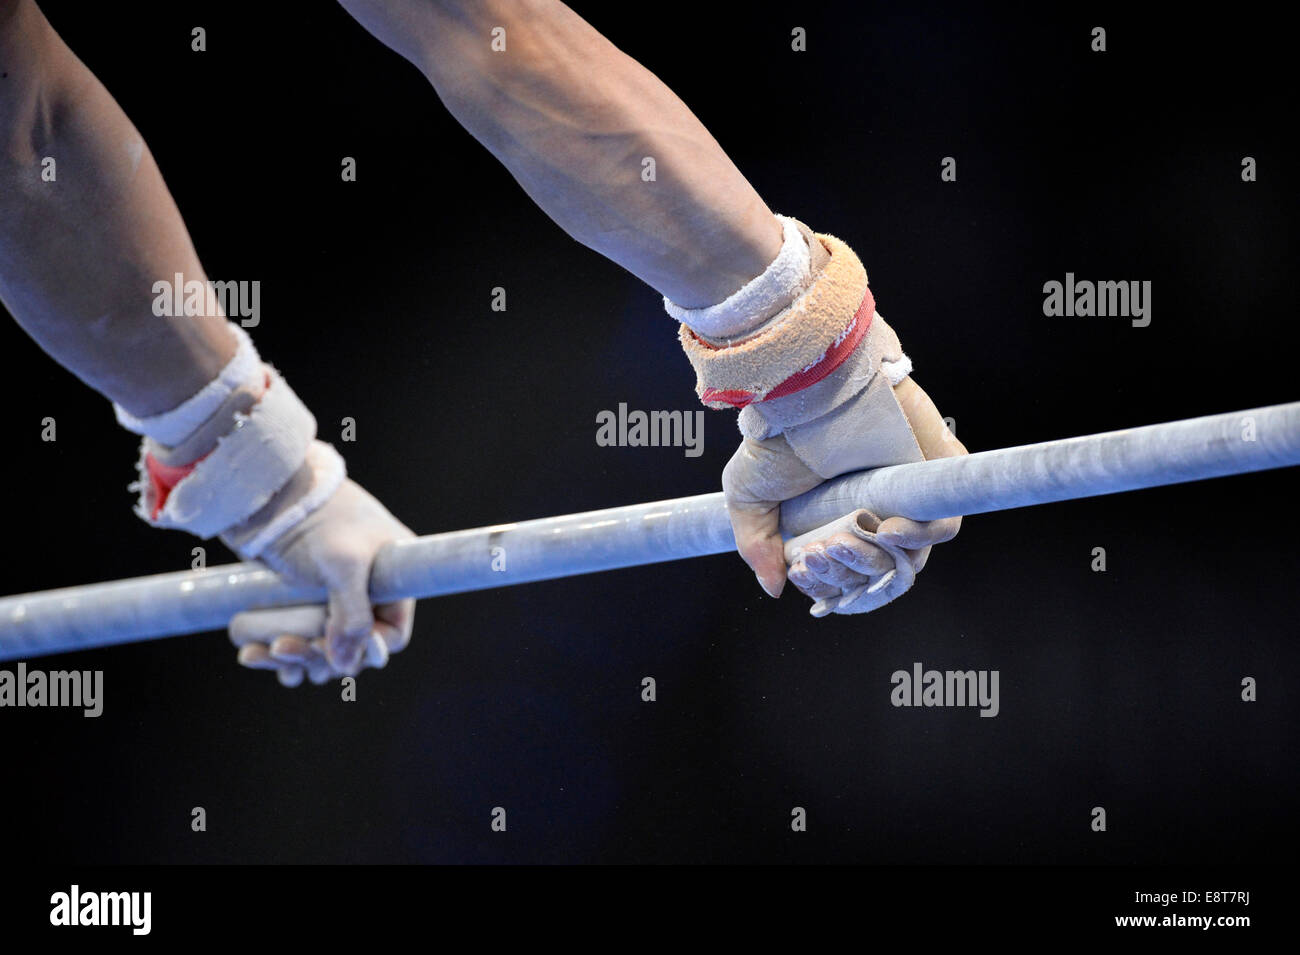 Hands Of A Gymnast Competing On The High Bar 31st DTB Cup Gymnastics World Baden Wrttemberg Germany